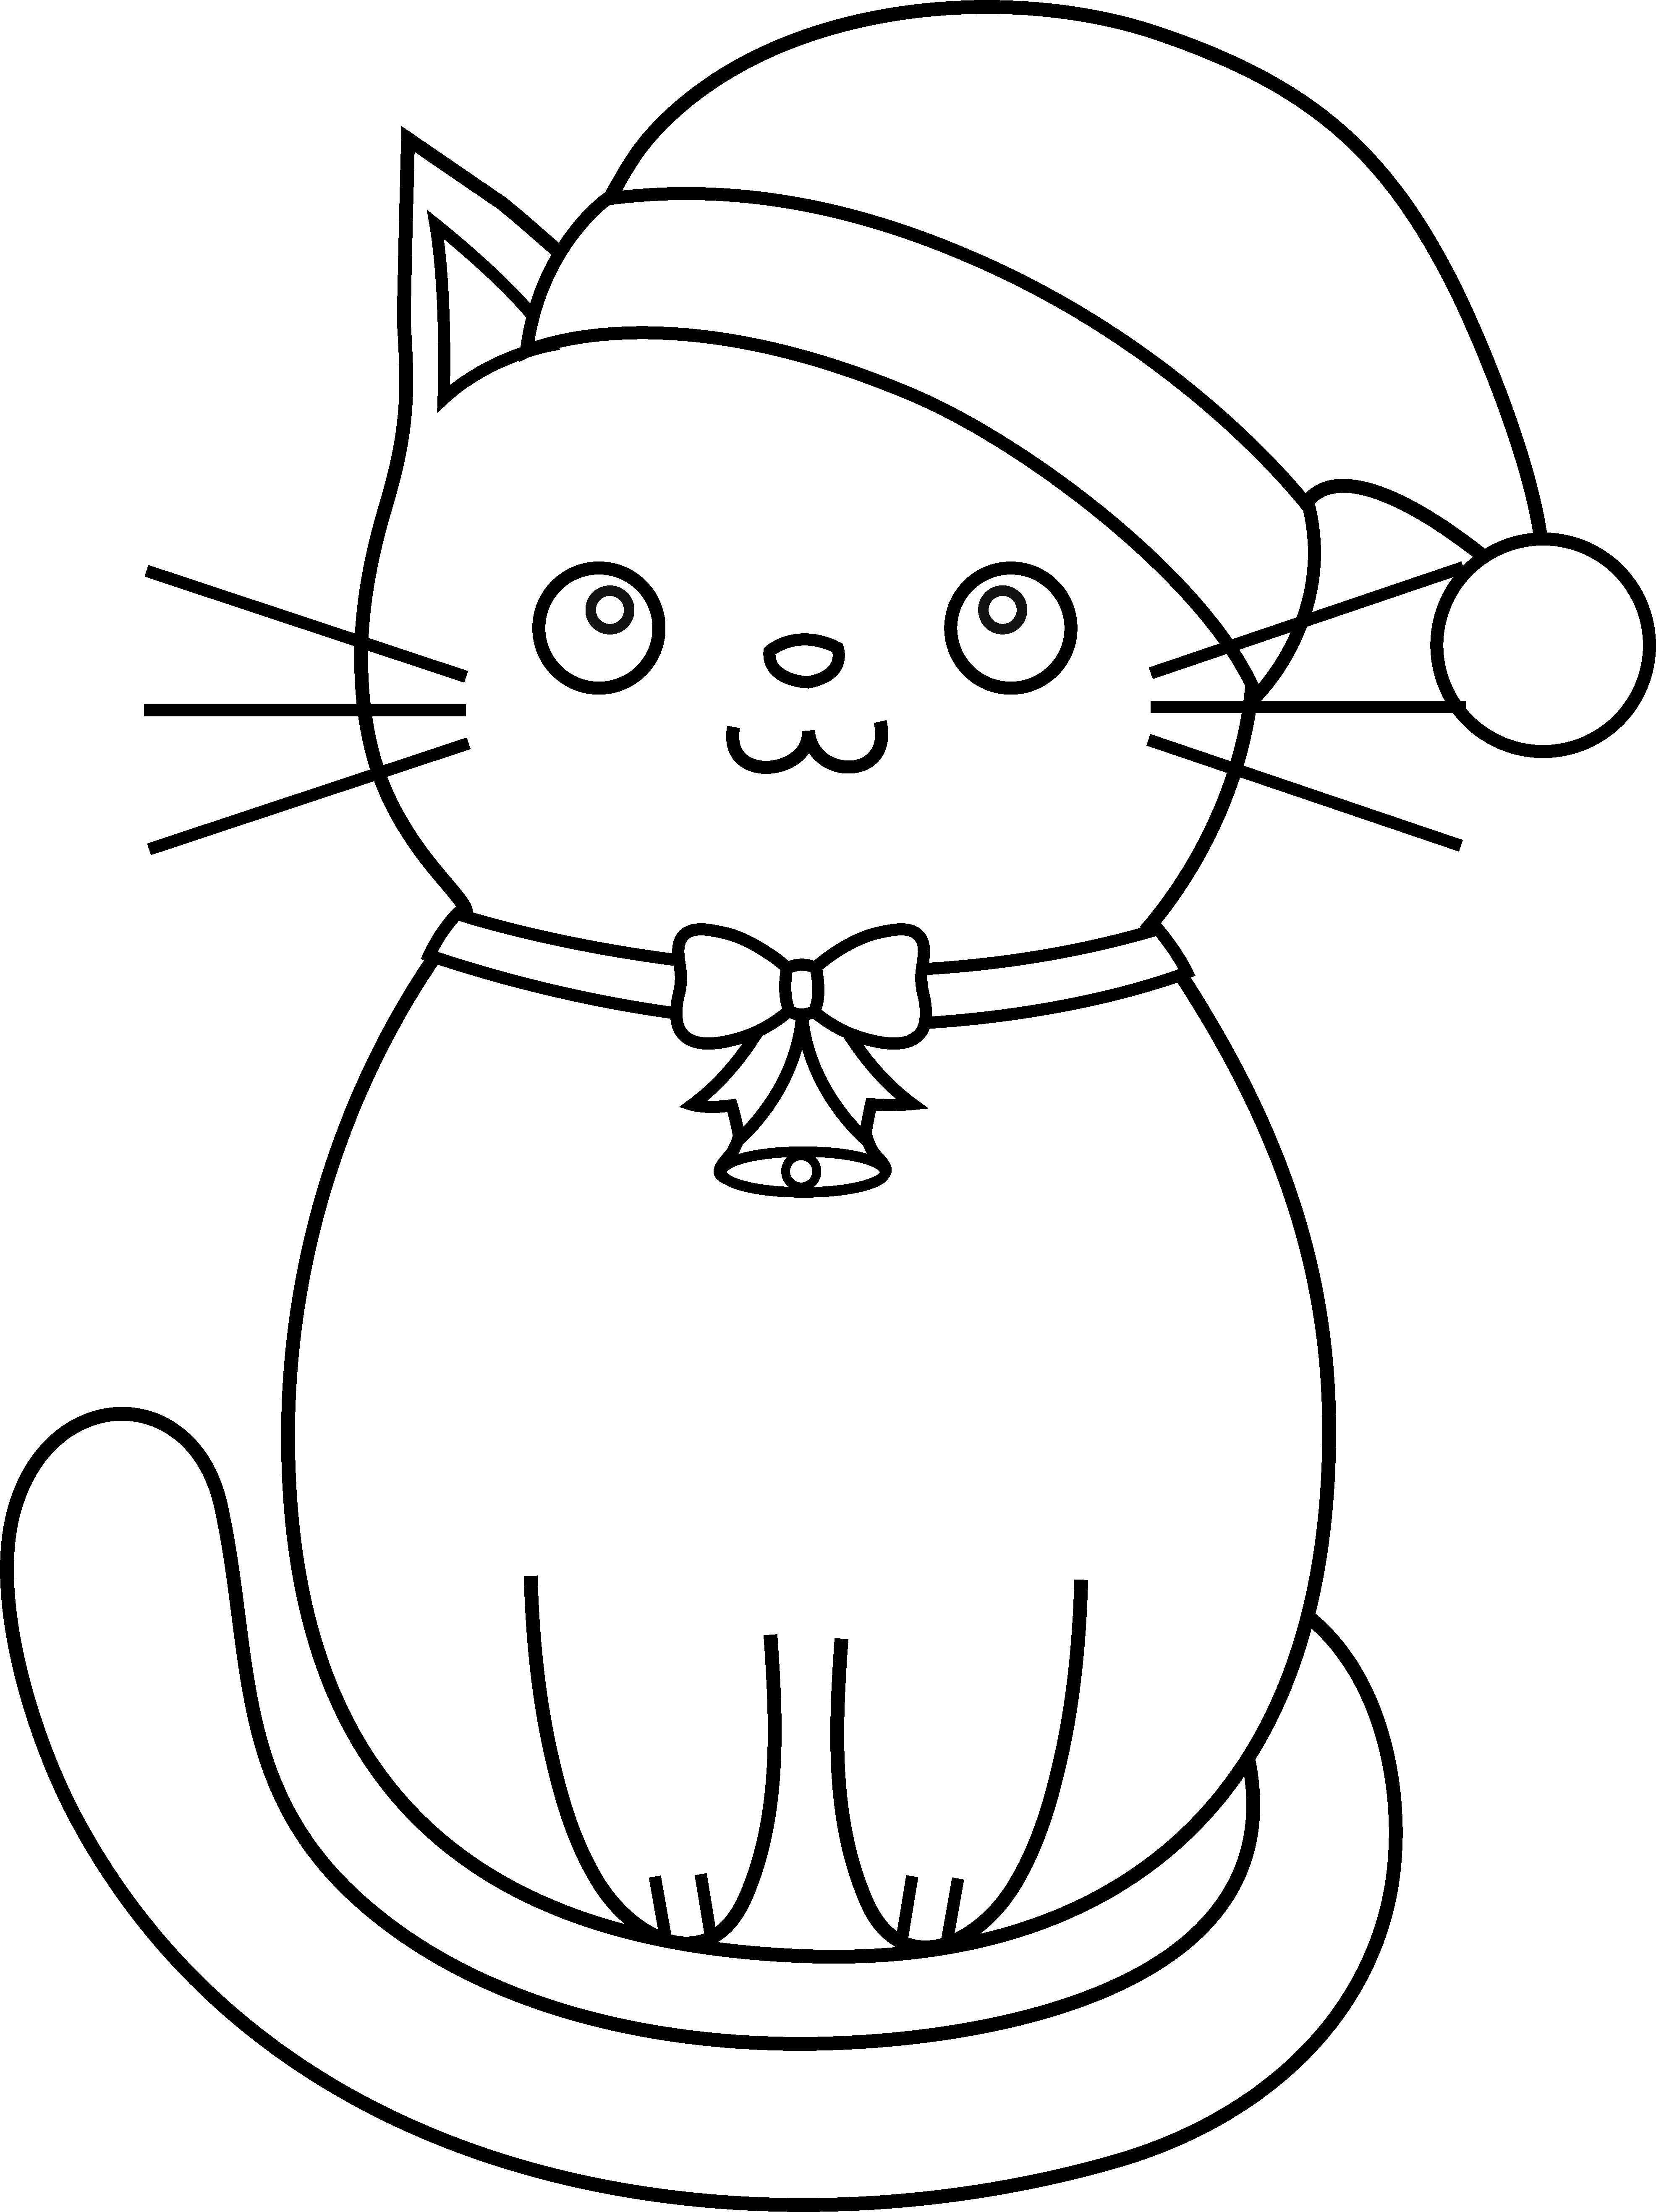 coloring pages of kittens to print free printable kitten coloring pages for kids best to coloring kittens print pages of